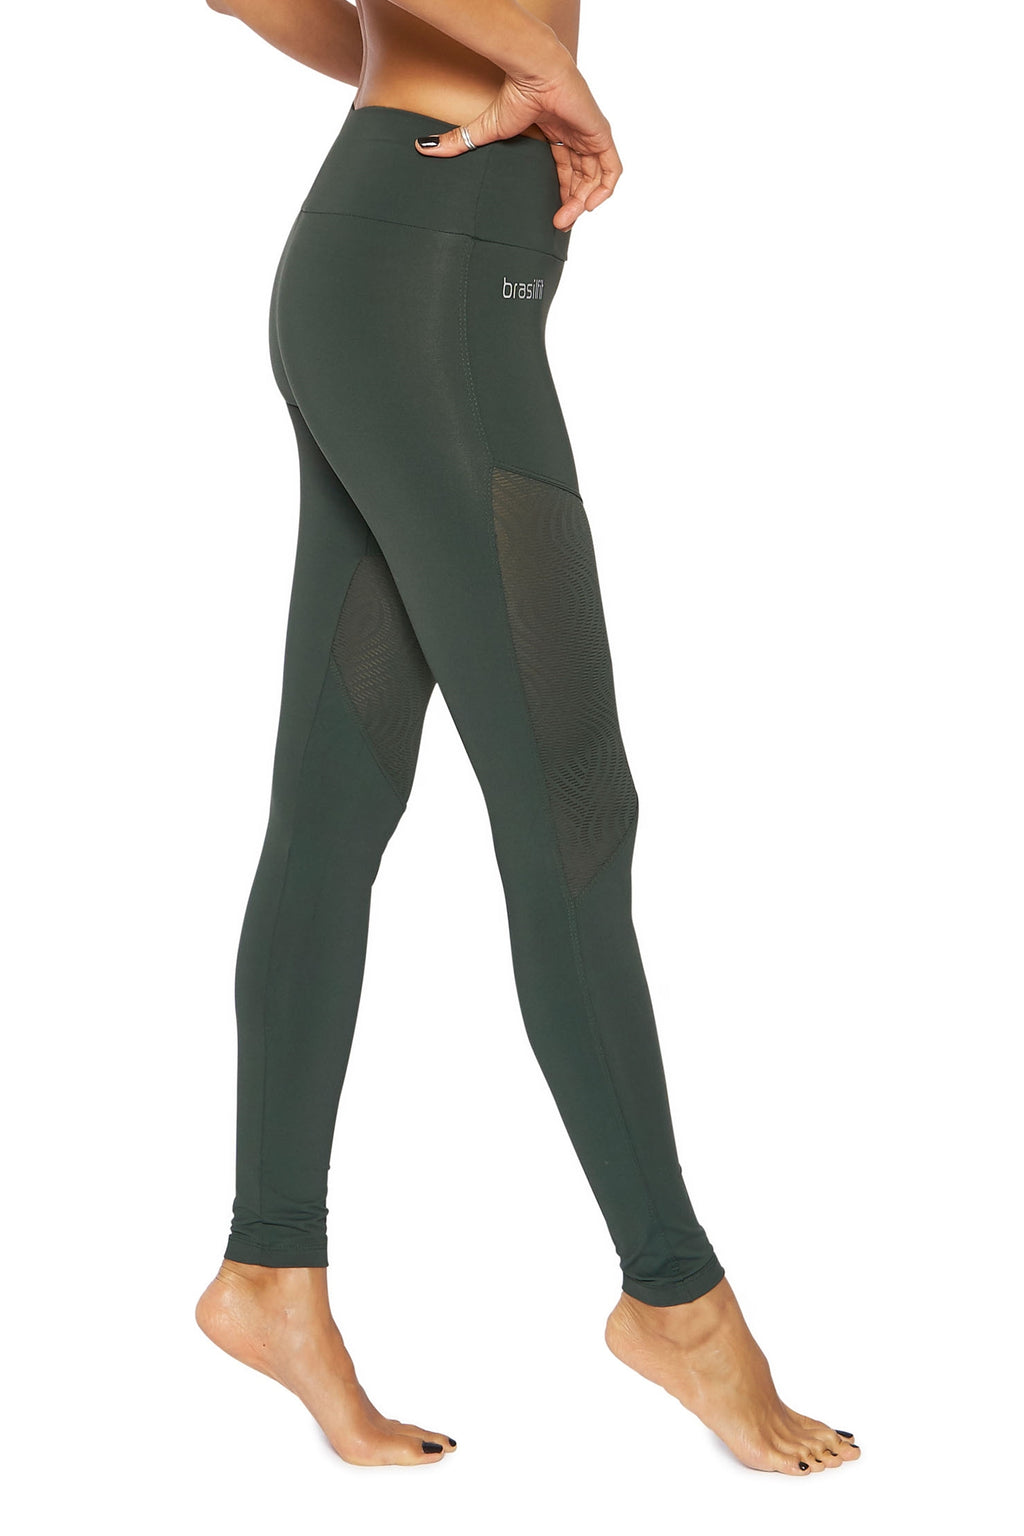 Cozani Full Length Legging